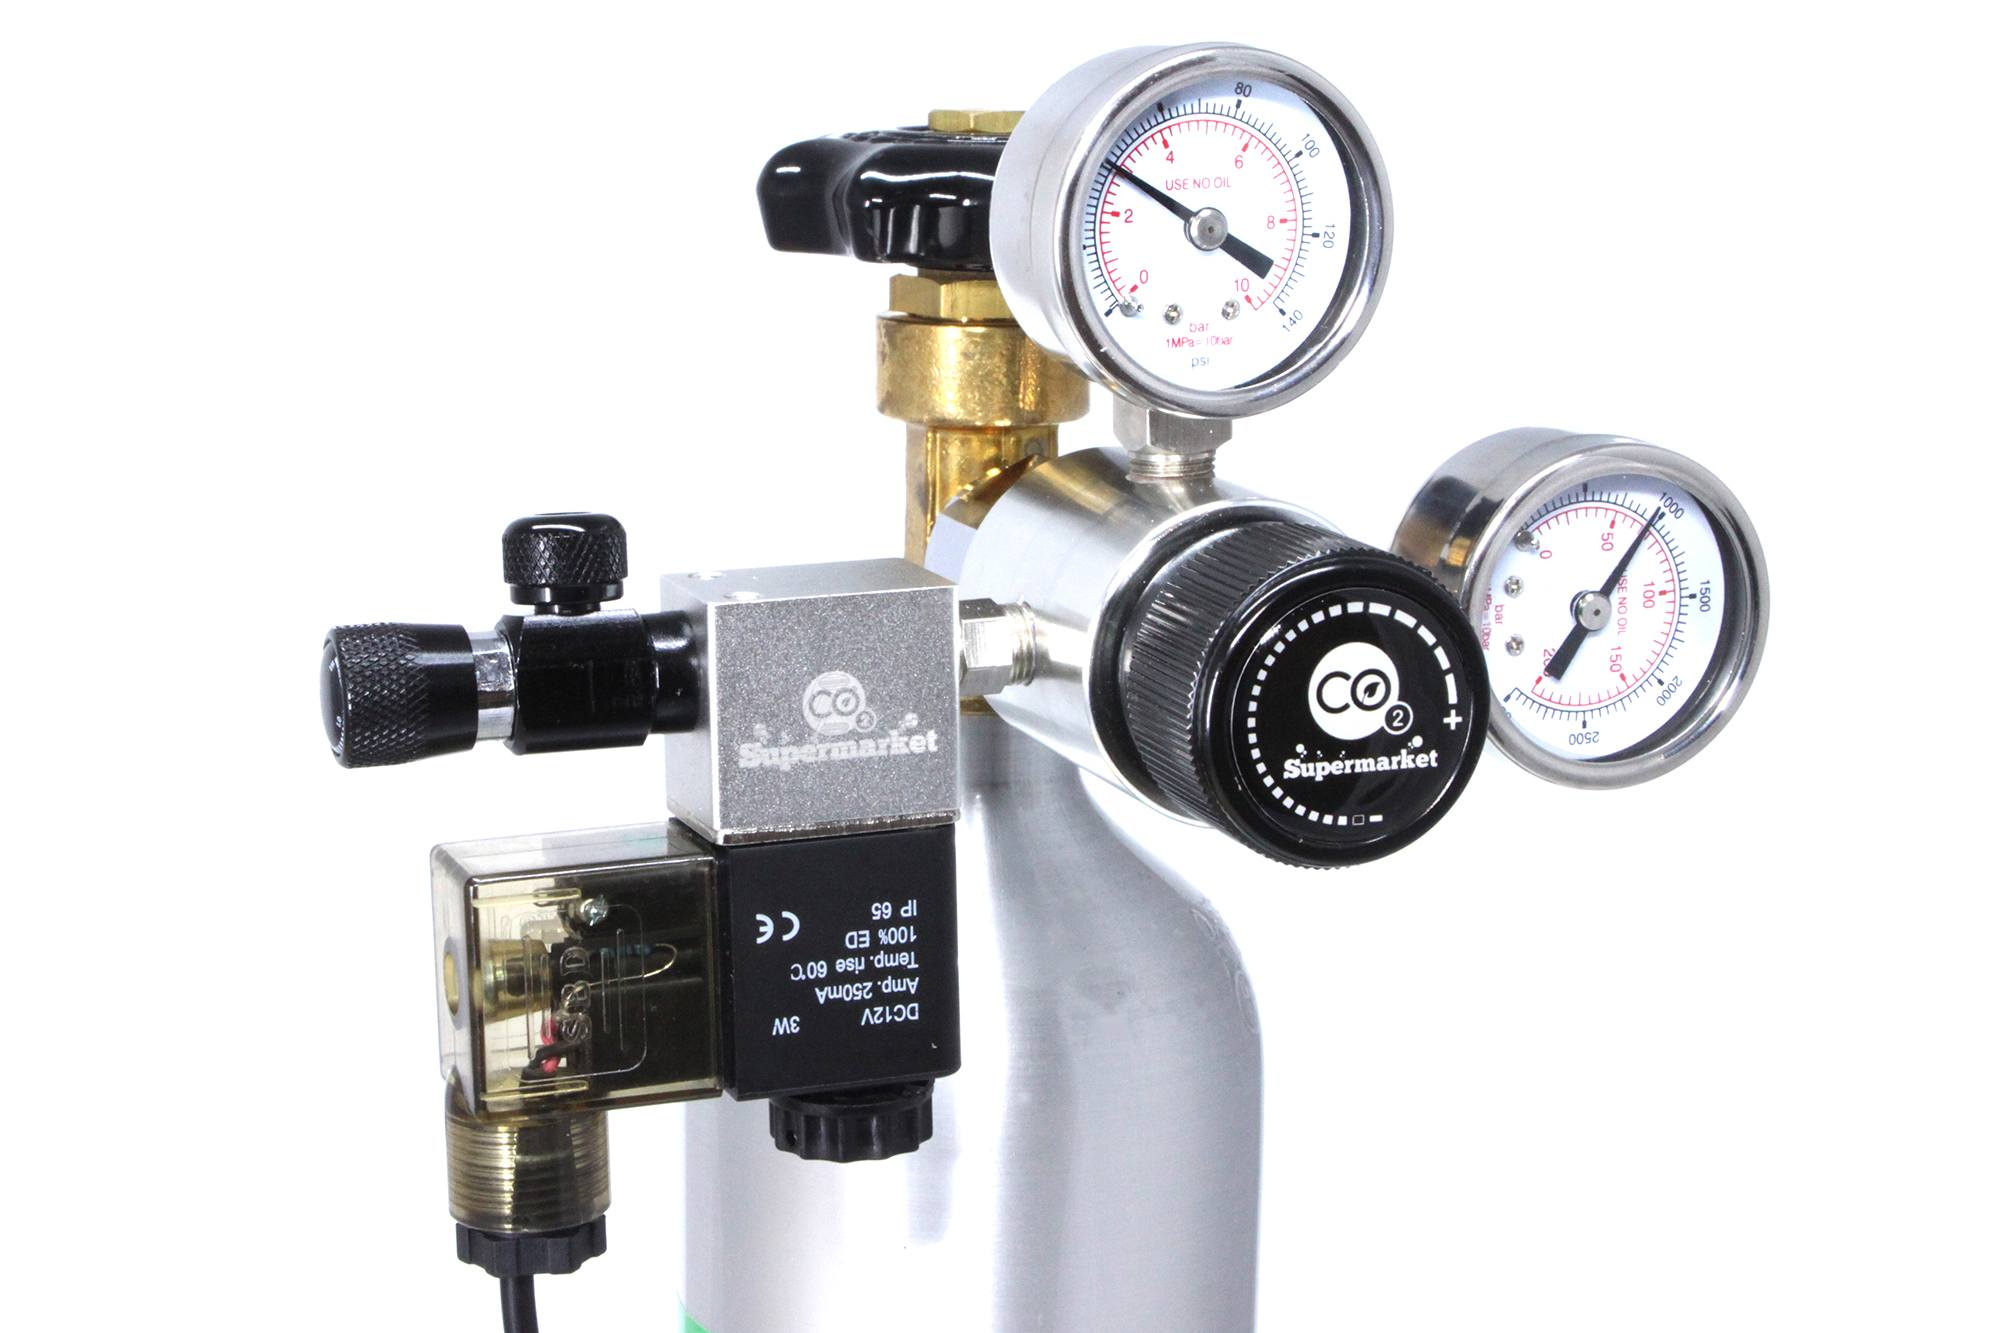 Single stage CO2 regulator attached to Horizontal Cylinder